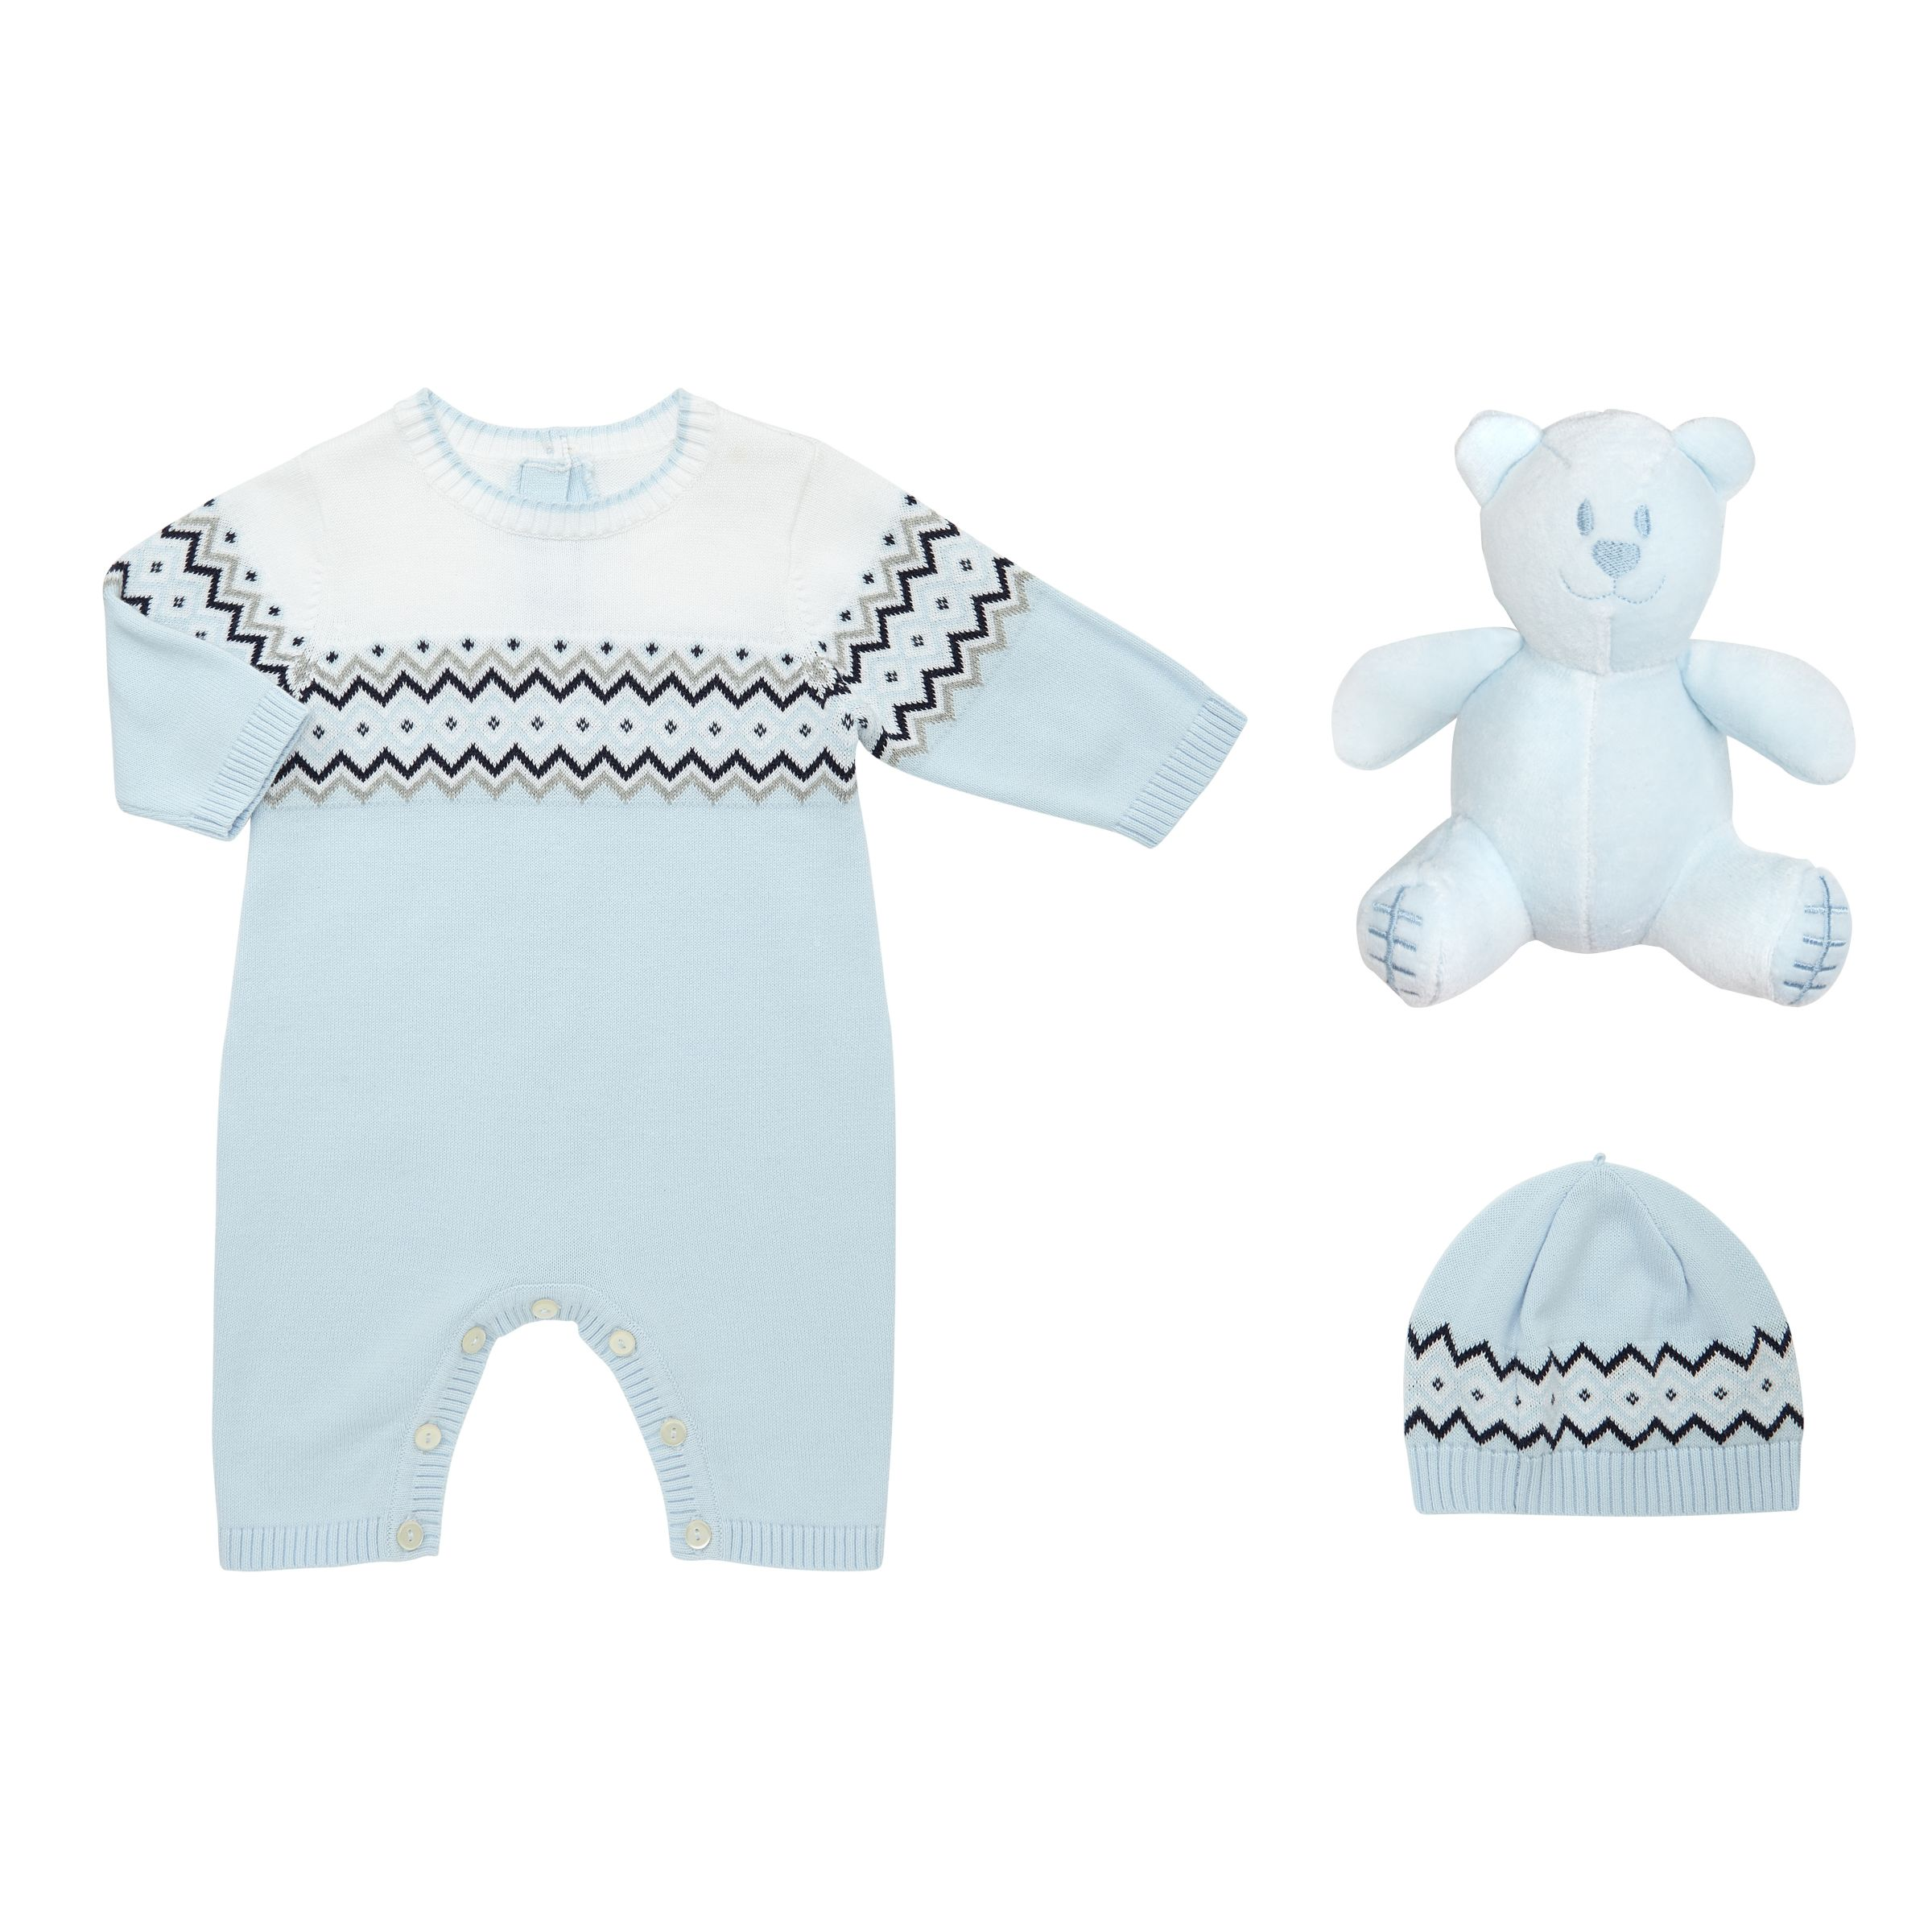 Emile et Rose Emile et Rose Baby Fair Isle Knit Romper Playsuit and Hat Set